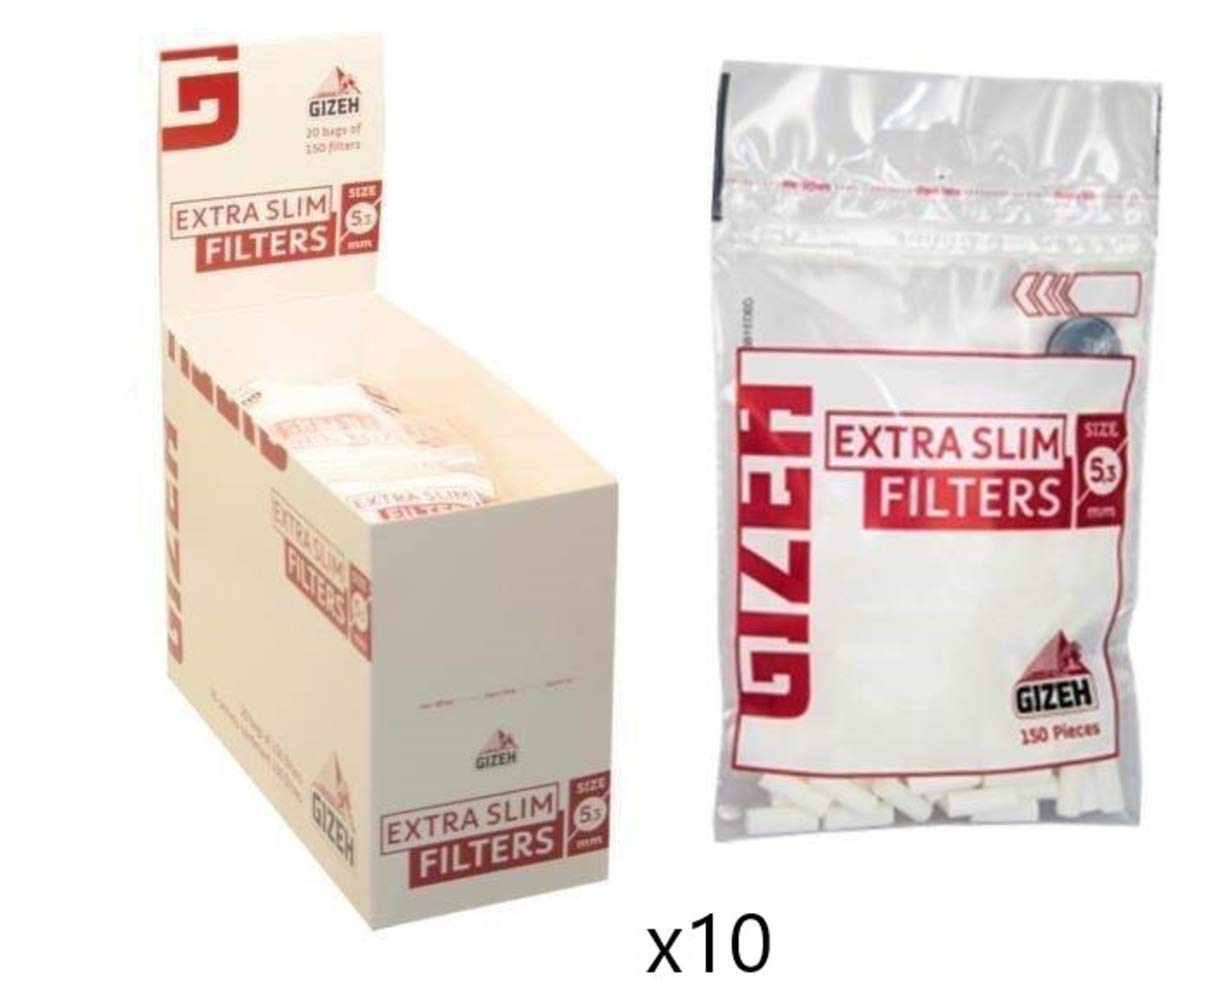 Gizeh Extra Slim Cigarette Filter Tips 5.3 mm Lot of 10 Boxes of 20 Bags Each Box